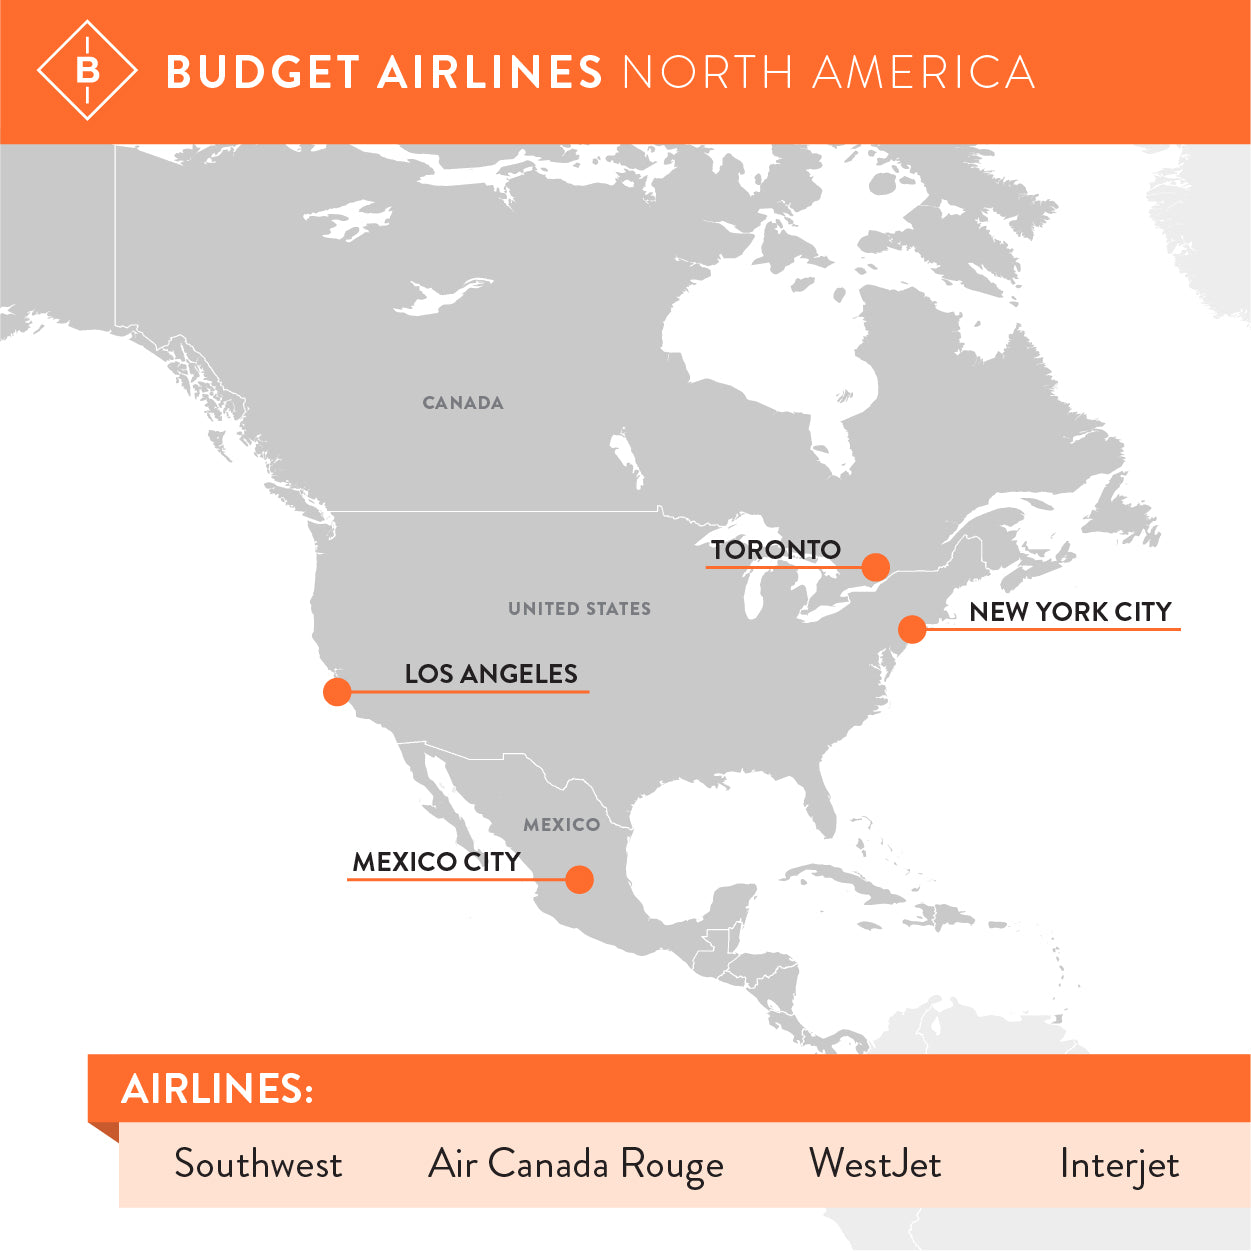 Low cost airline carriers in North America.